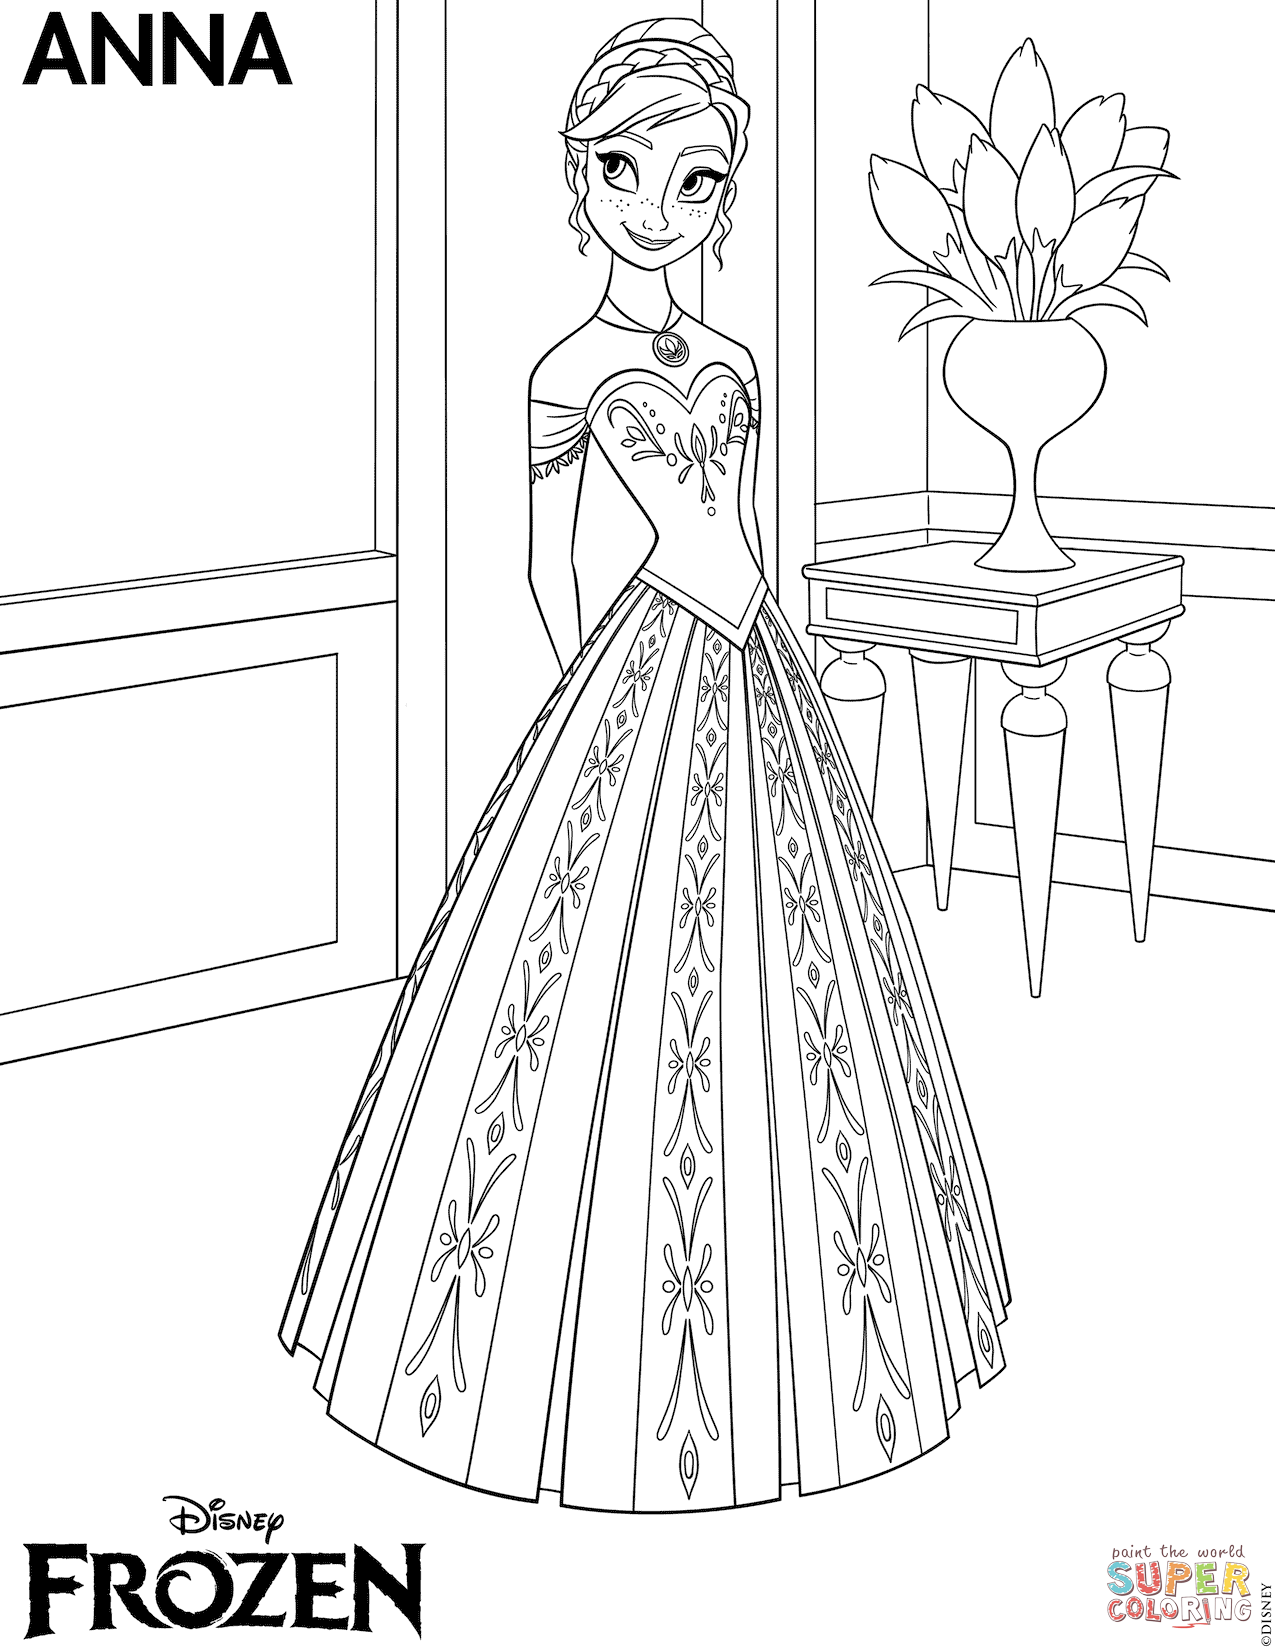 1275x1650 Frozen Anna Coloring Page Free Printable Coloring Pages